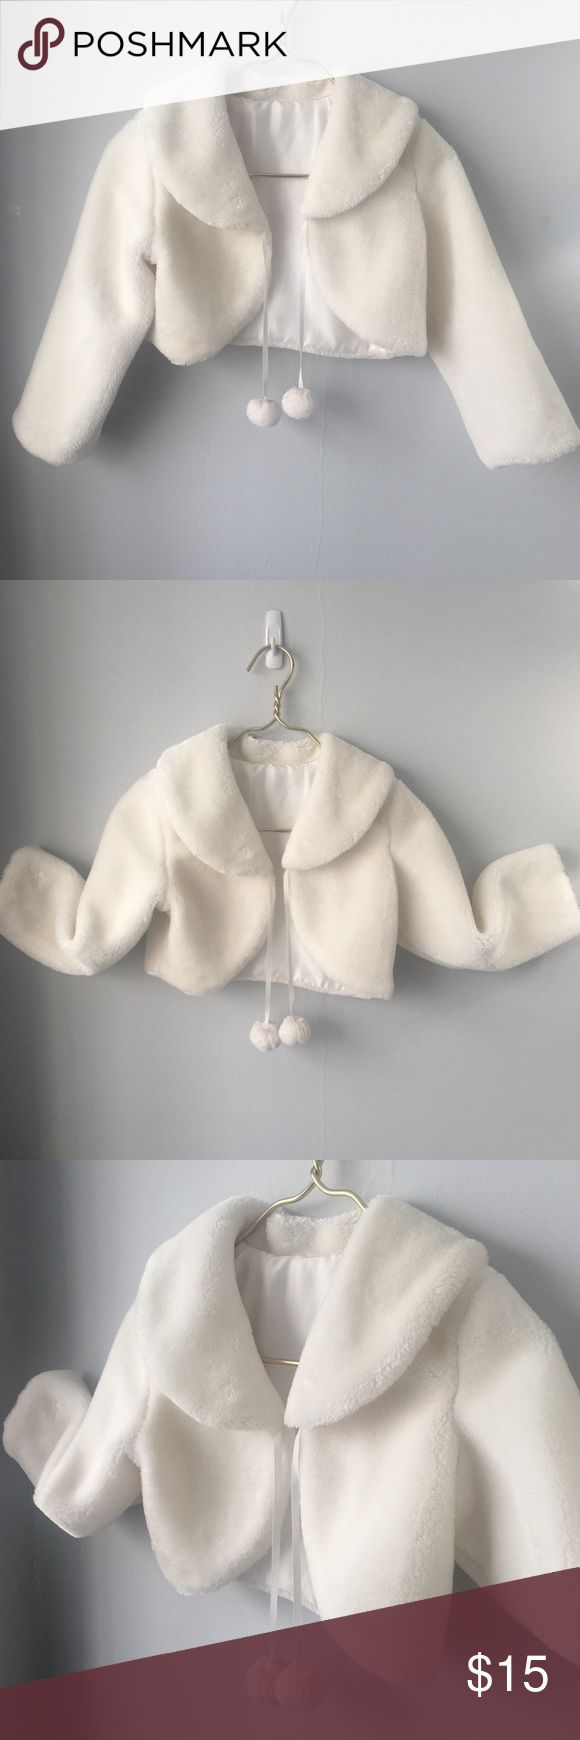 """Girl's Faux Fur White Cropped Pom Pom Jacket  Kids Adorable Faux Fur Cropped Jacket for a young girl Size L. The exterior is in Excellent condition, the lining has some discoloration and is torn at the arm pits. This is perfect for the holidays!  Size: Girl's L Color: Winter White Material: Faux Fur  Measurements: Pit to Pit 16"""" Shoulder to Shoulder 15"""" Sleeve Inseam 13"""" Length 12"""" Jackets & Coats"""